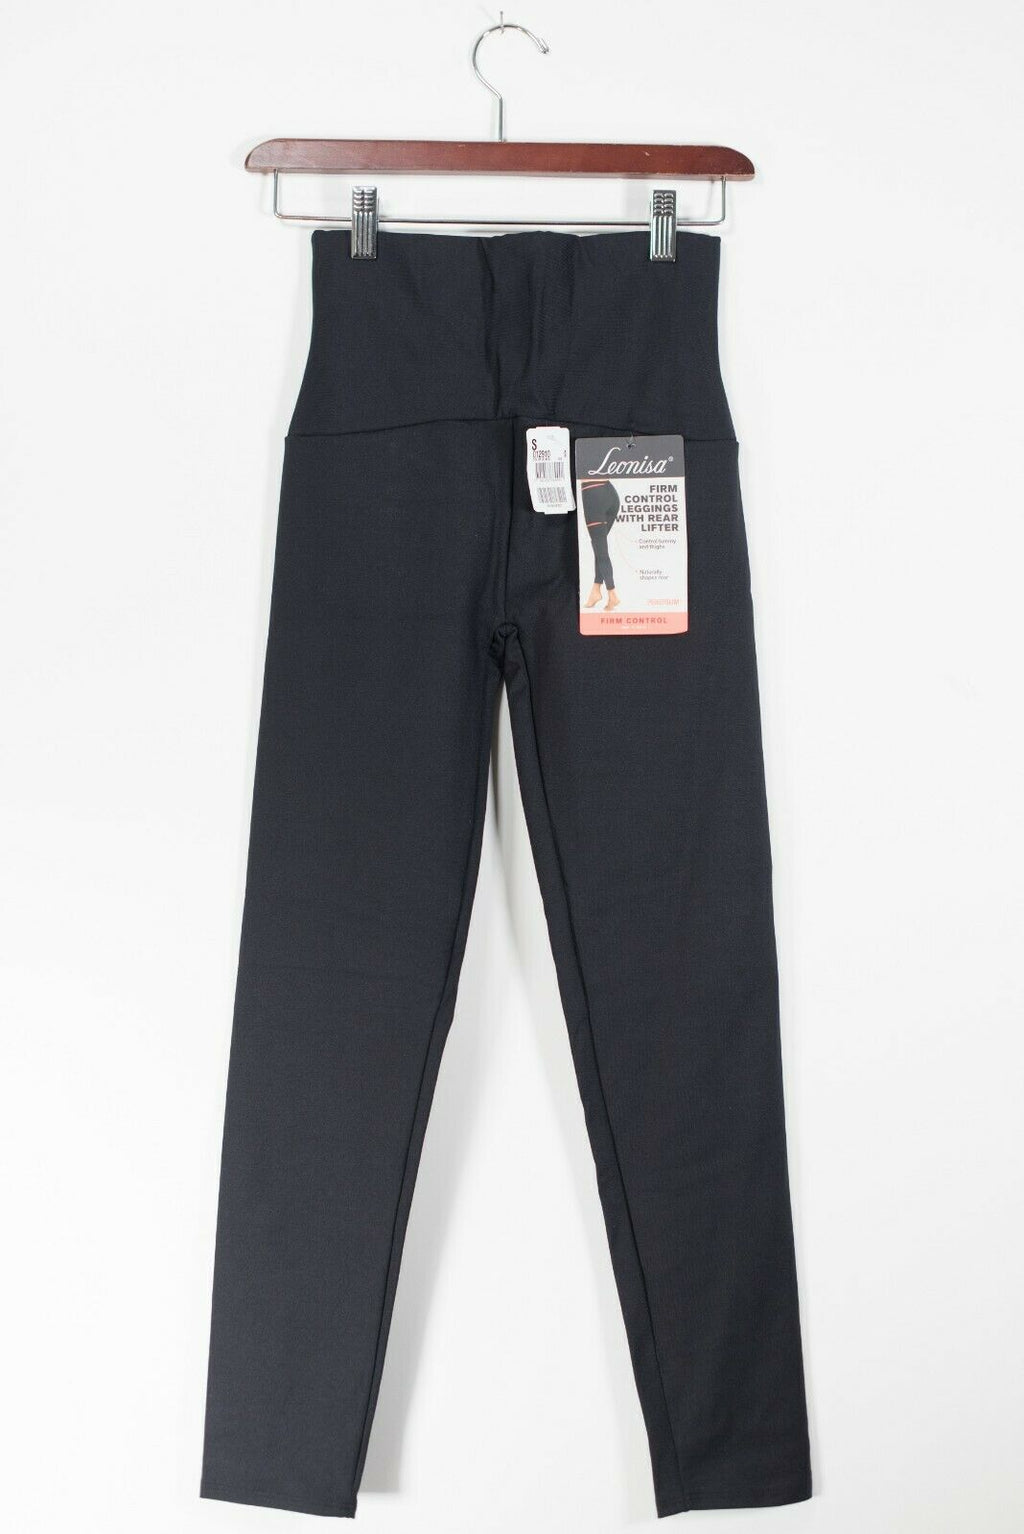 Leonisa Womens Small Black Leggings Firm Control Compression Rear Lift Pants NWT